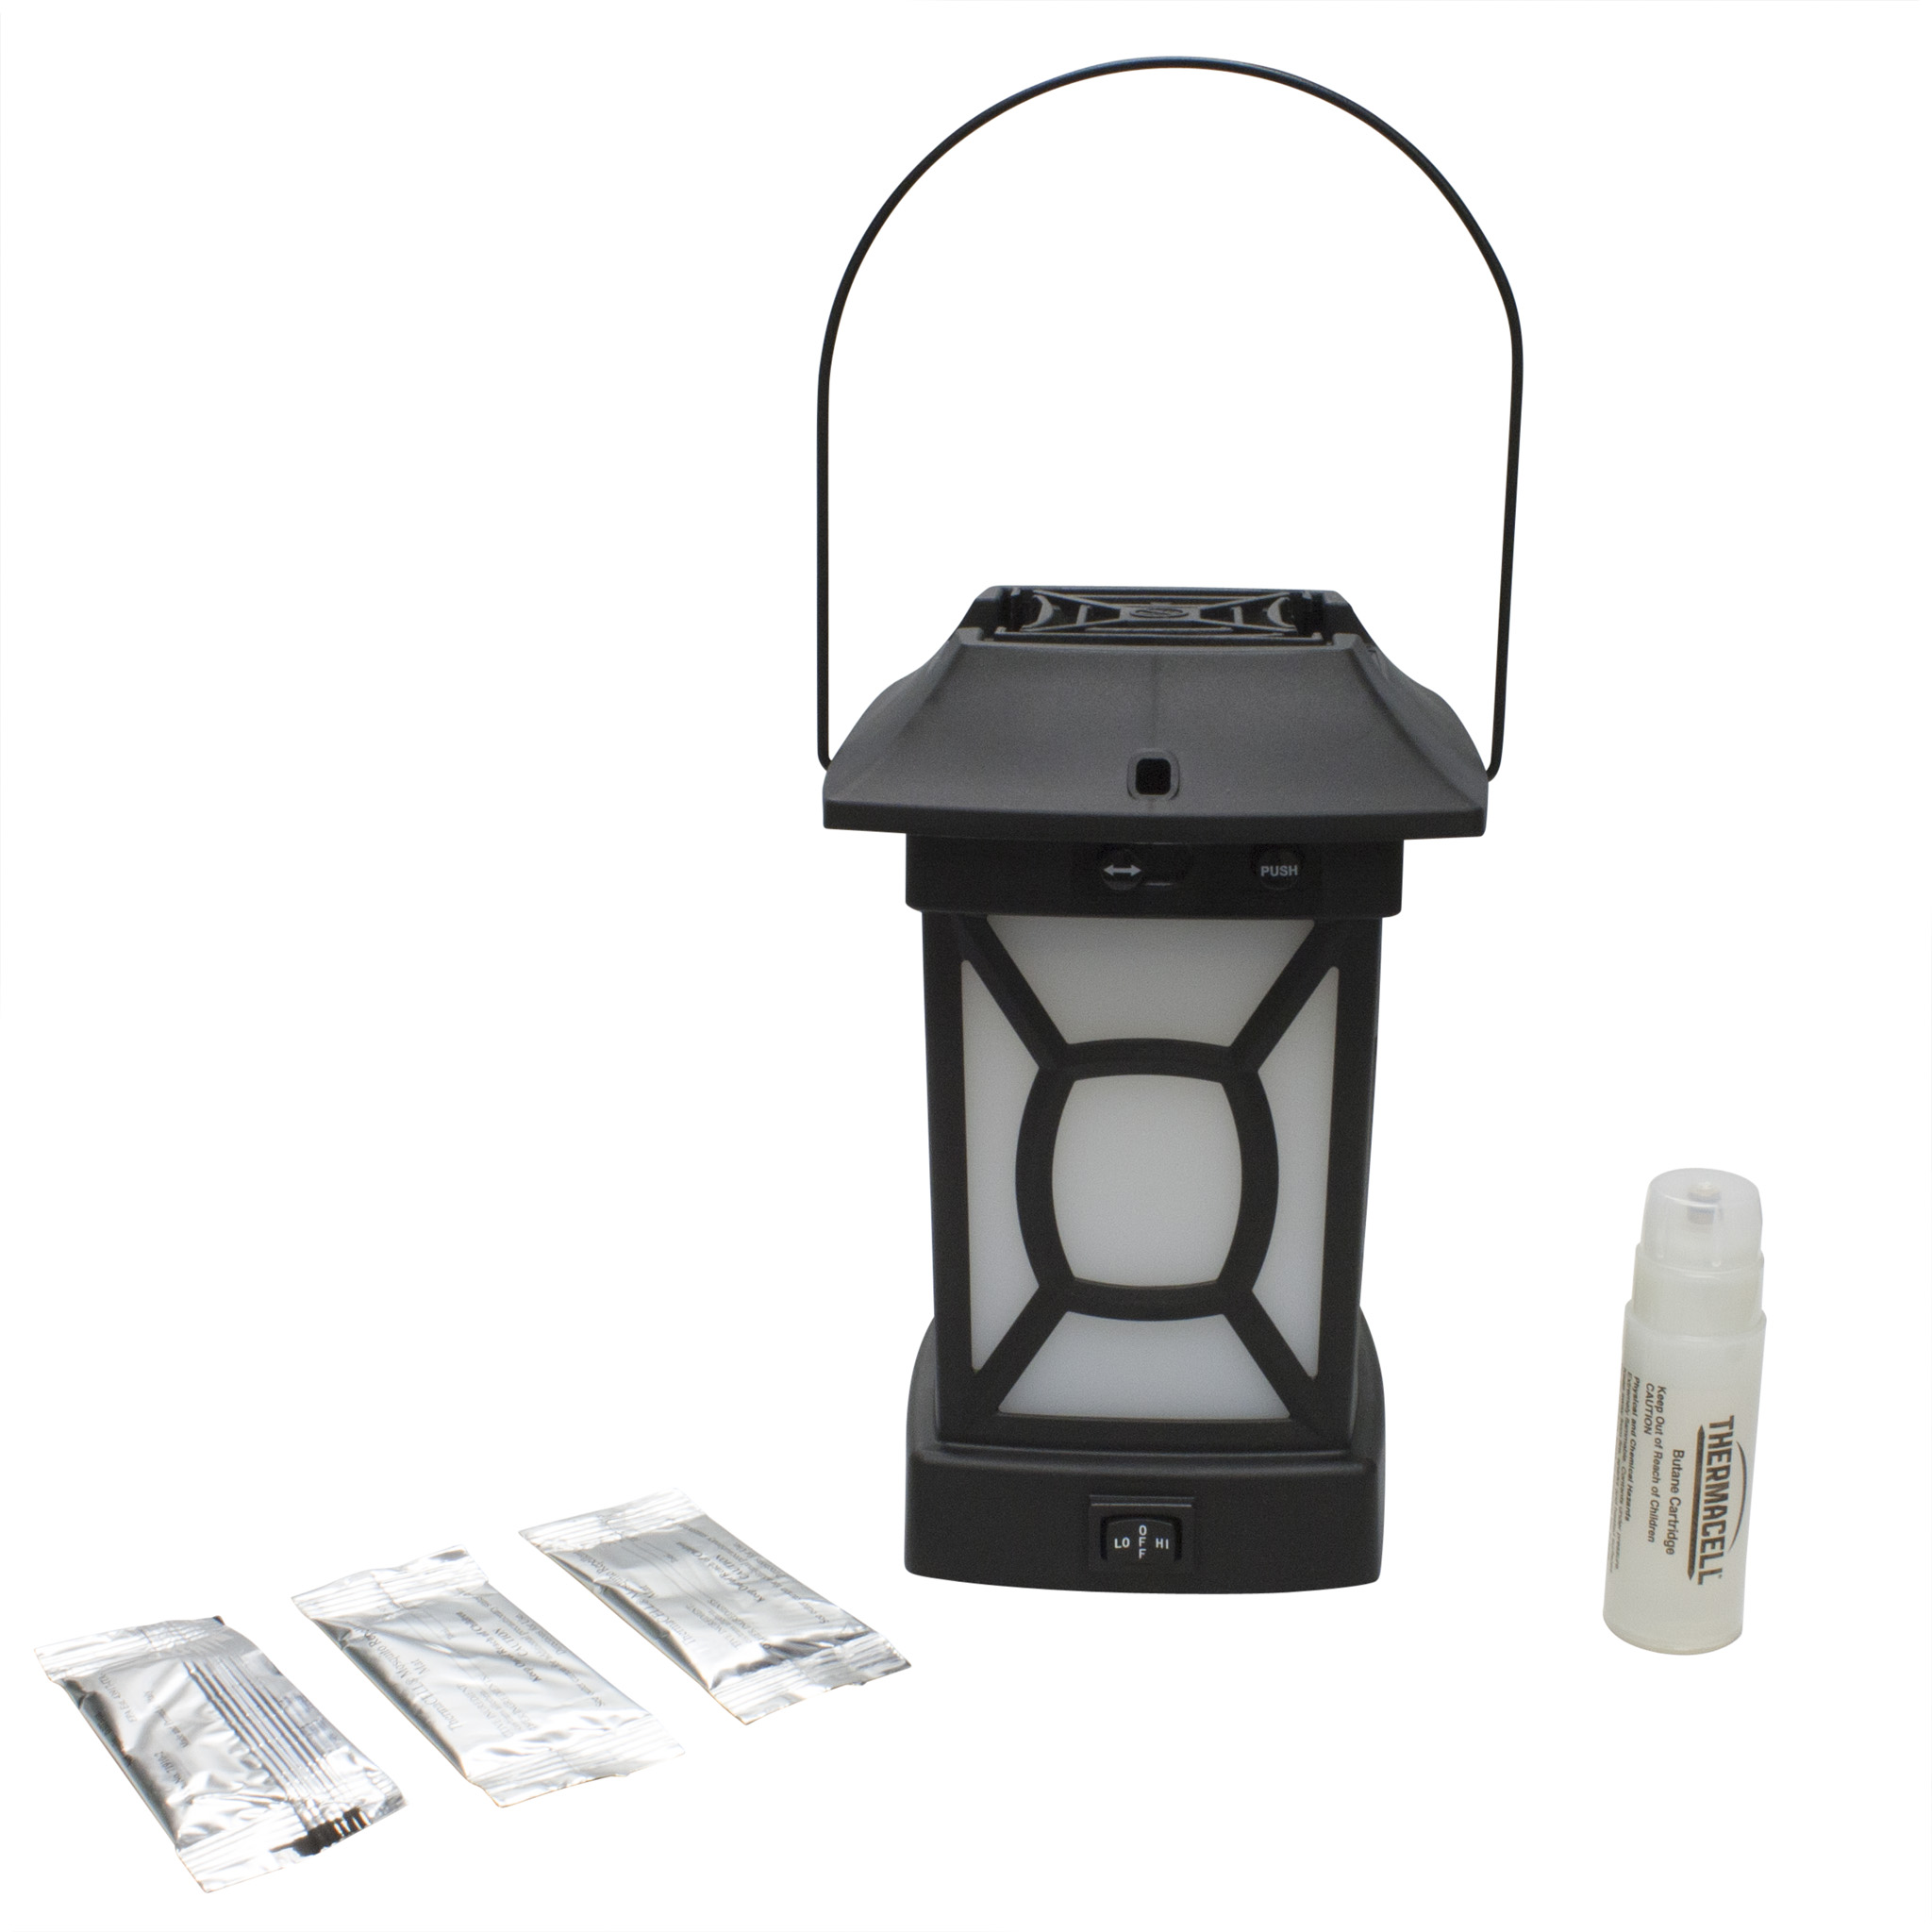 Good ThermaCELL Mosquito Repellent Patio Lantern (12 Hrs) · Alternate Image 1 ·  Alternate Image 2